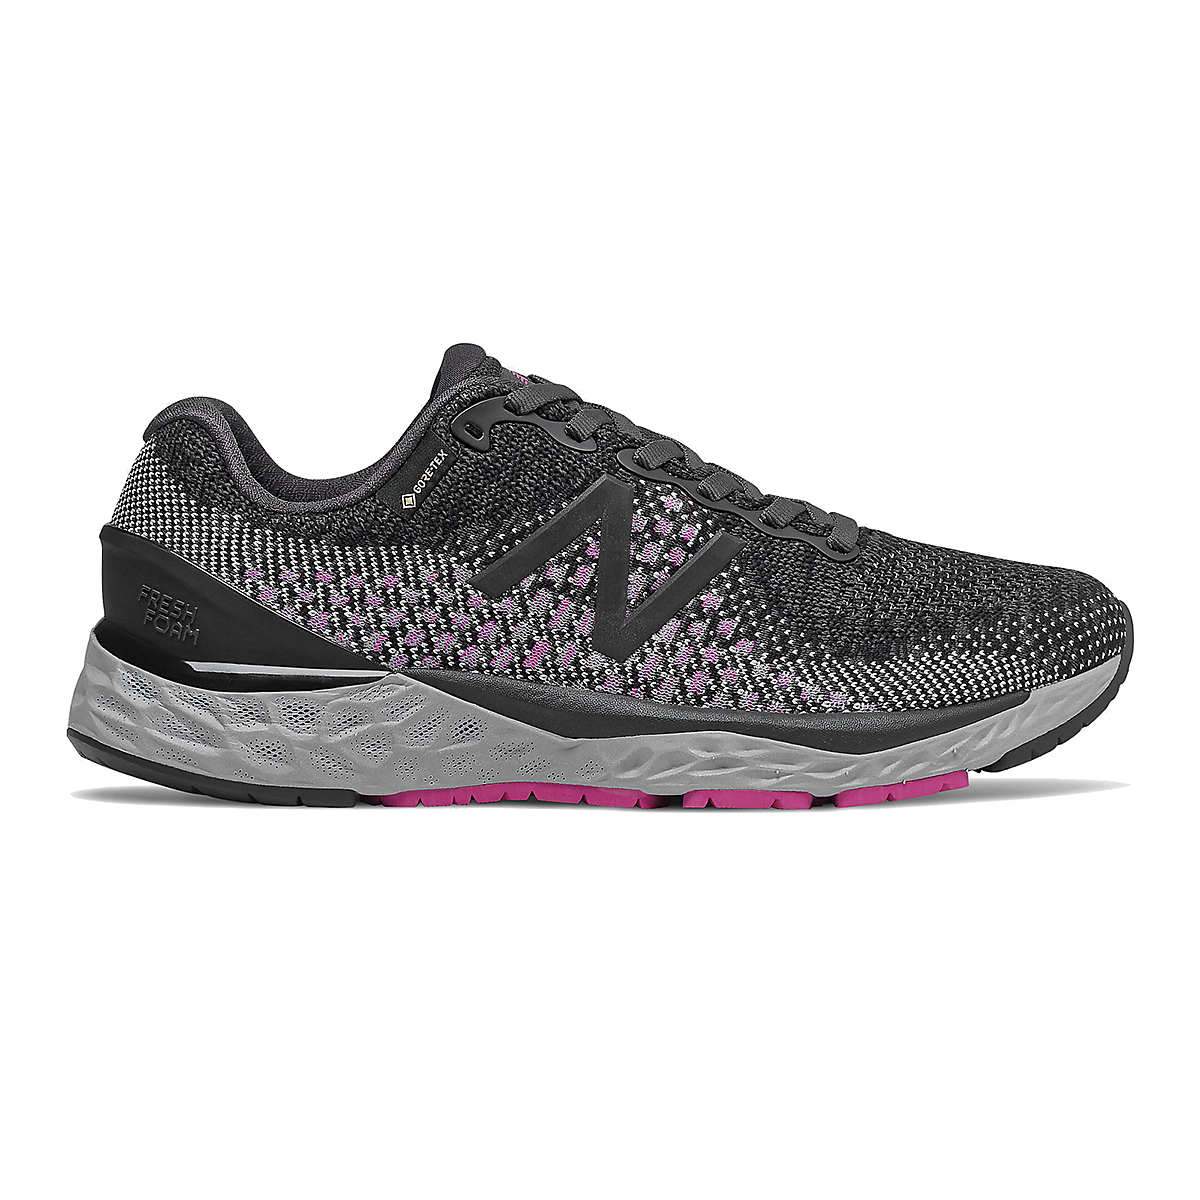 Women's New Balance Fresh Foam 880v10 Gore-Tex Running Shoes - Color: Black With Thunder - Size: 10 - Width: Regular, Black With Thunder, large, image 1